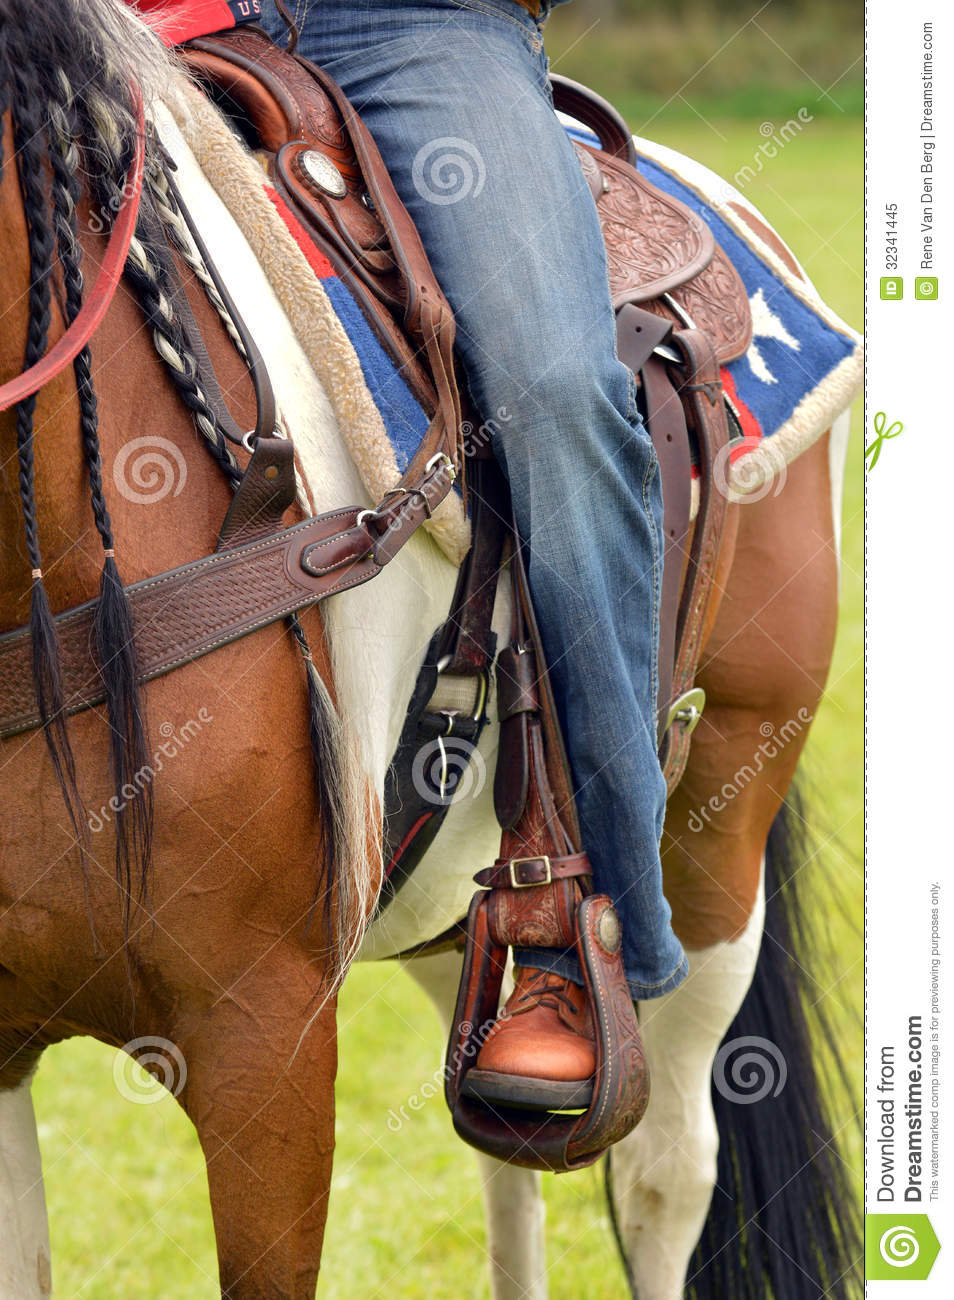 Pig Pen additionally Viewtopic also Page13 besides Royalty Free Stock Photo Jeans Horse Detail Western Rider Cowboy Leg Wearing Stirrup Image32341445 further Royalty Free Stock Photography Stable Image5913737. on horse stable plans